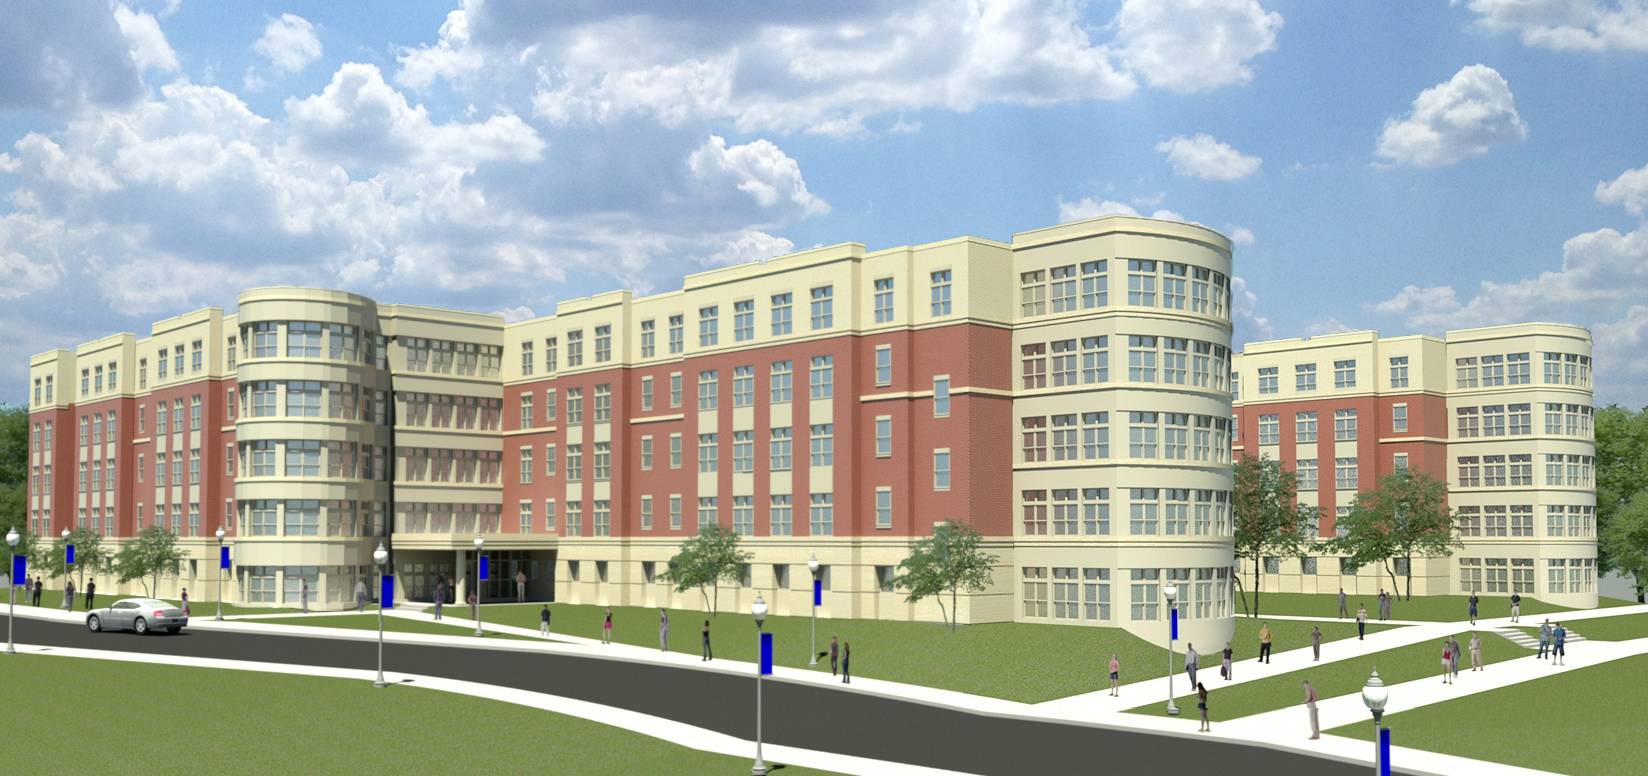 The Project: University Of Kentucky Housing Technology